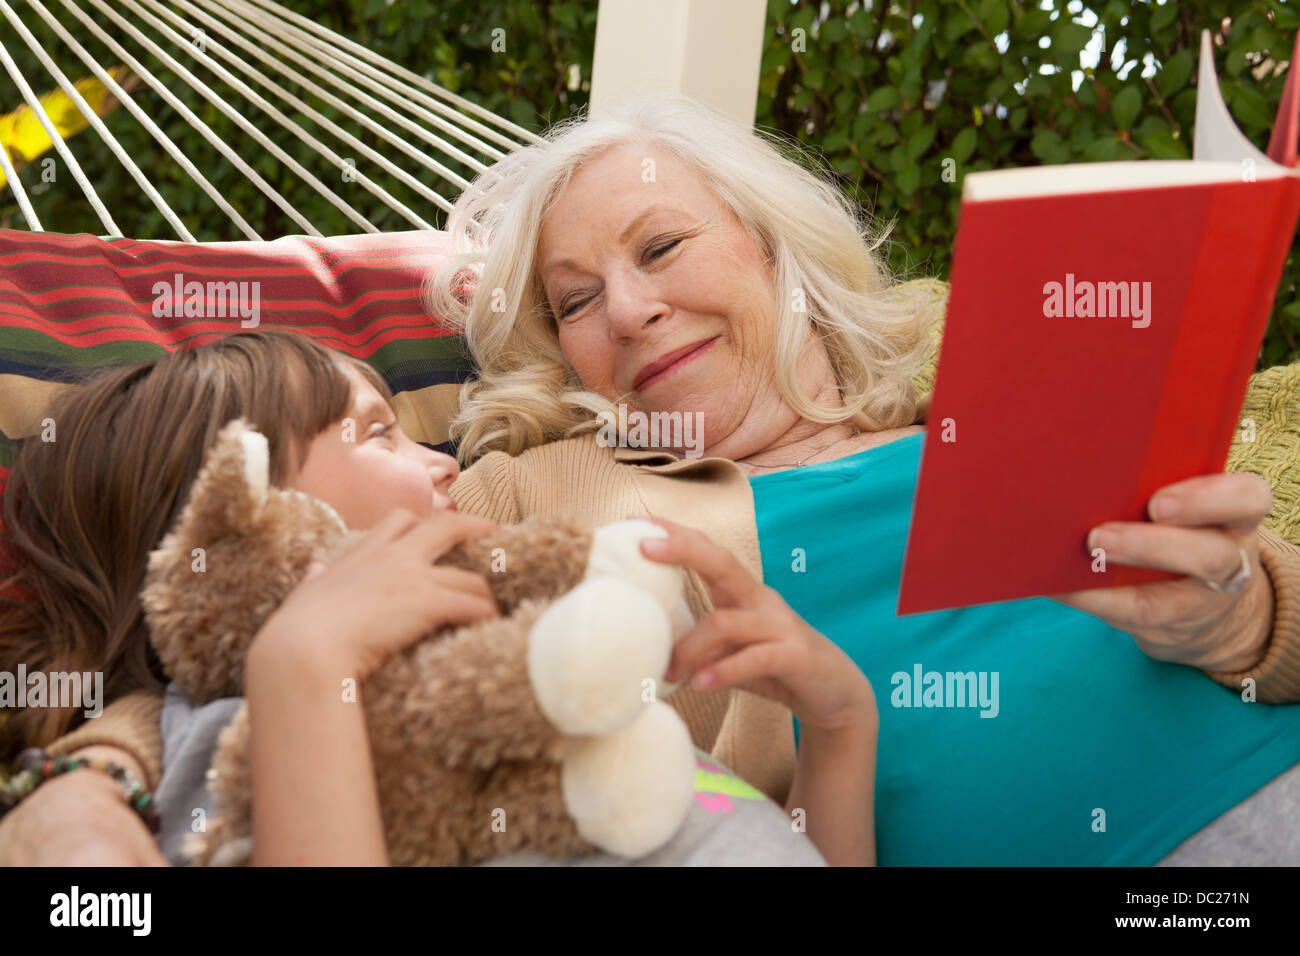 Grand-mère et petite-fille reading book in hammock Photo Stock